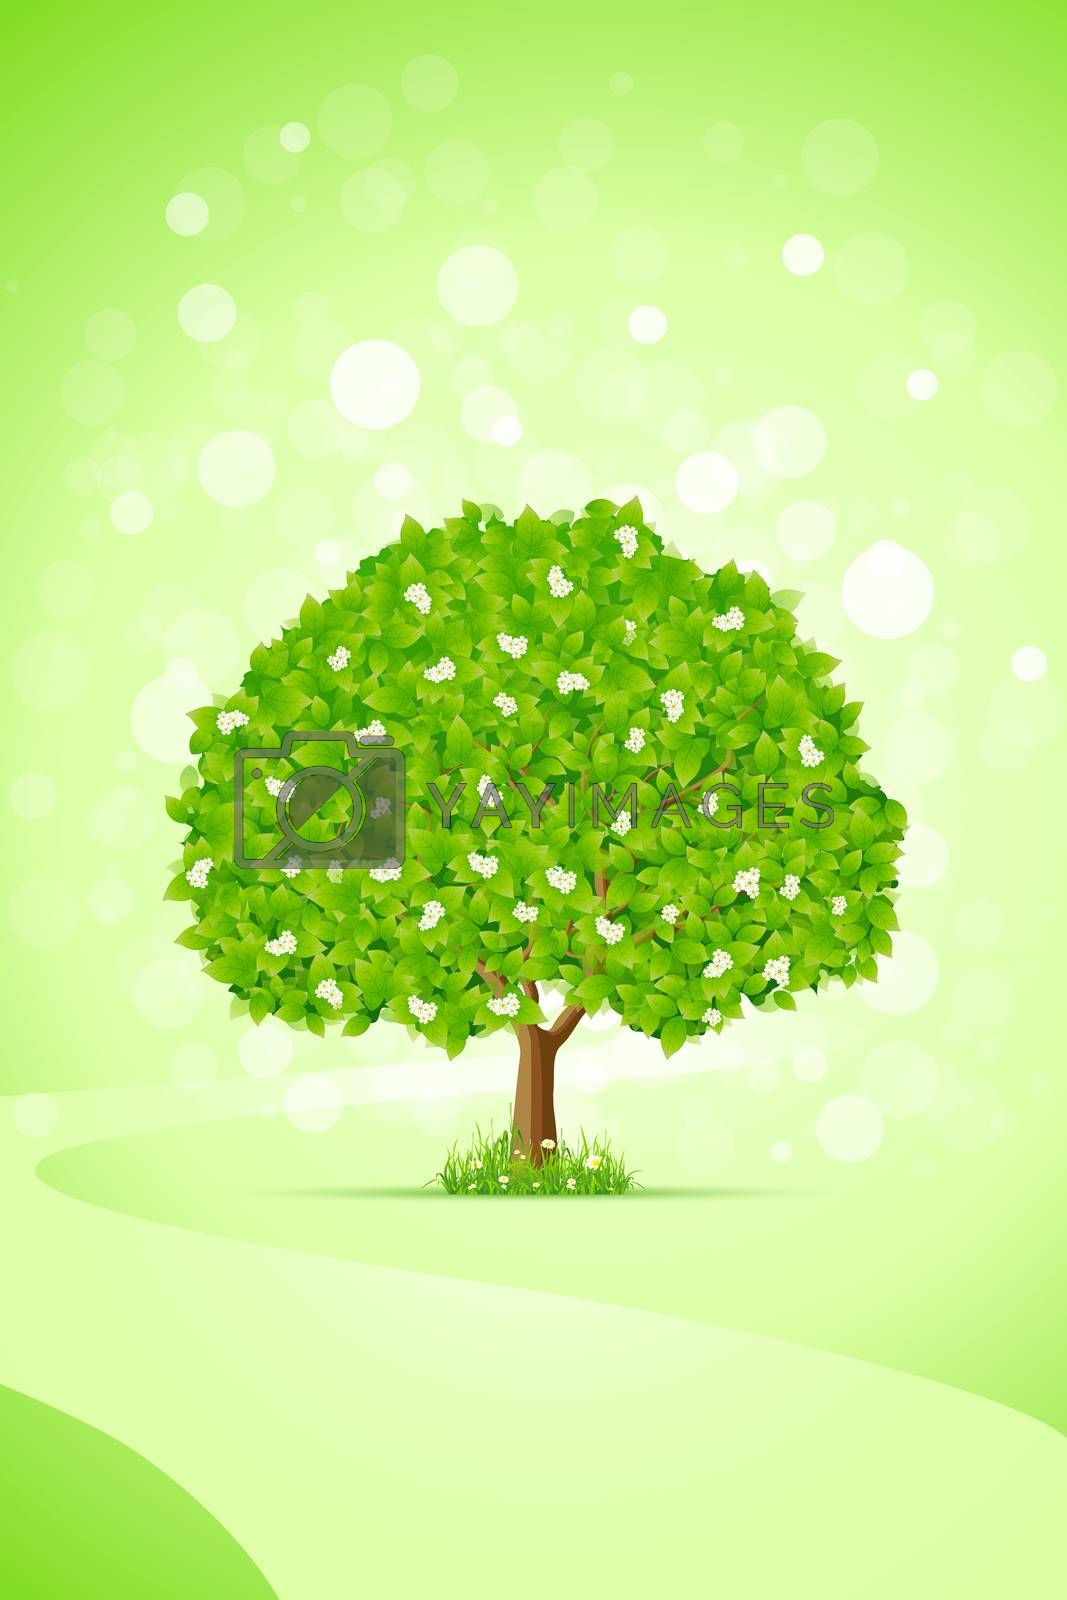 Green Tree by WaD